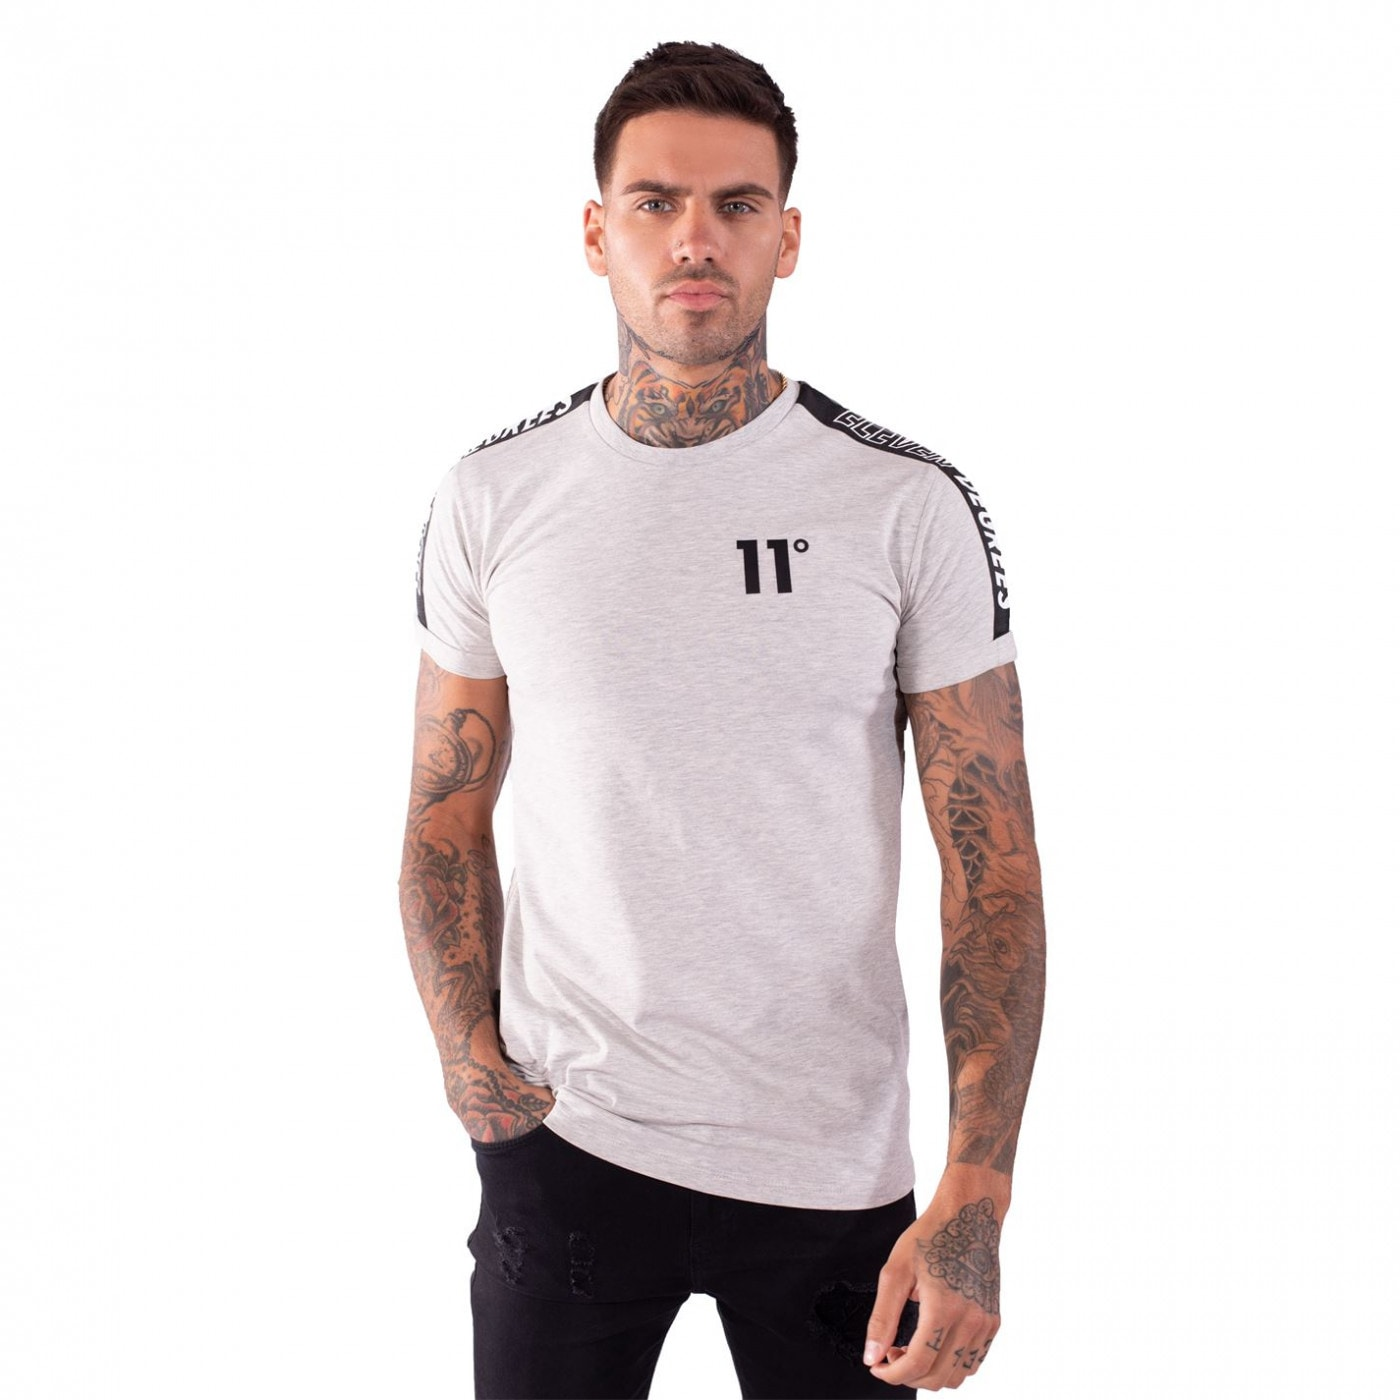 11 Degrees Taped Muscle T-Shirt